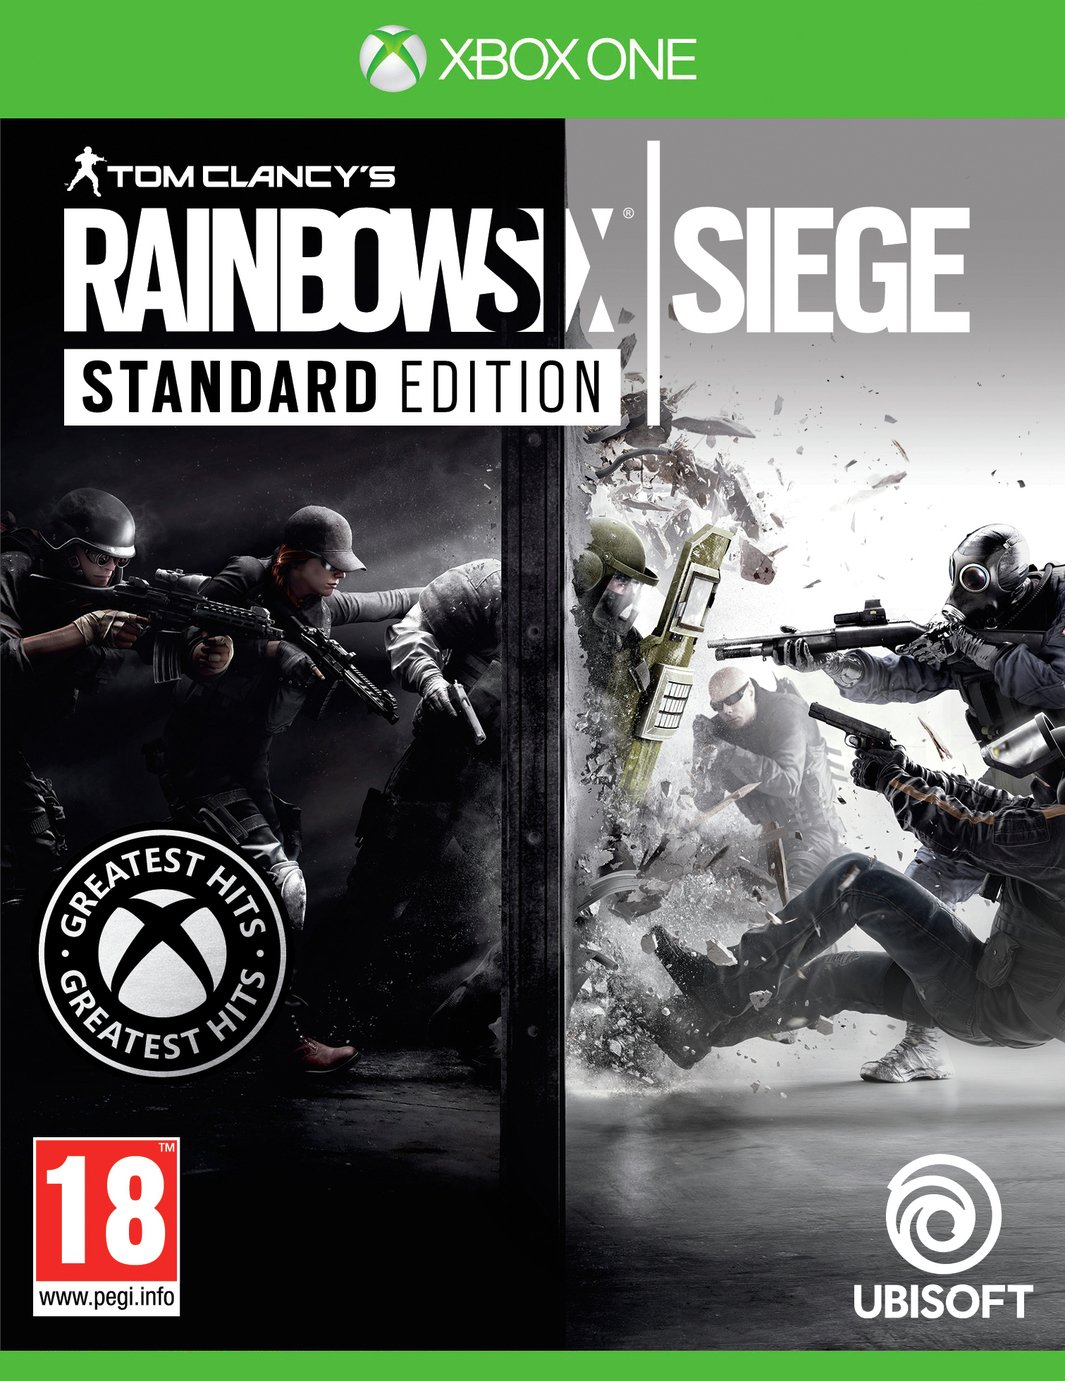 Image of Rainbow Six Siege - Xbox One